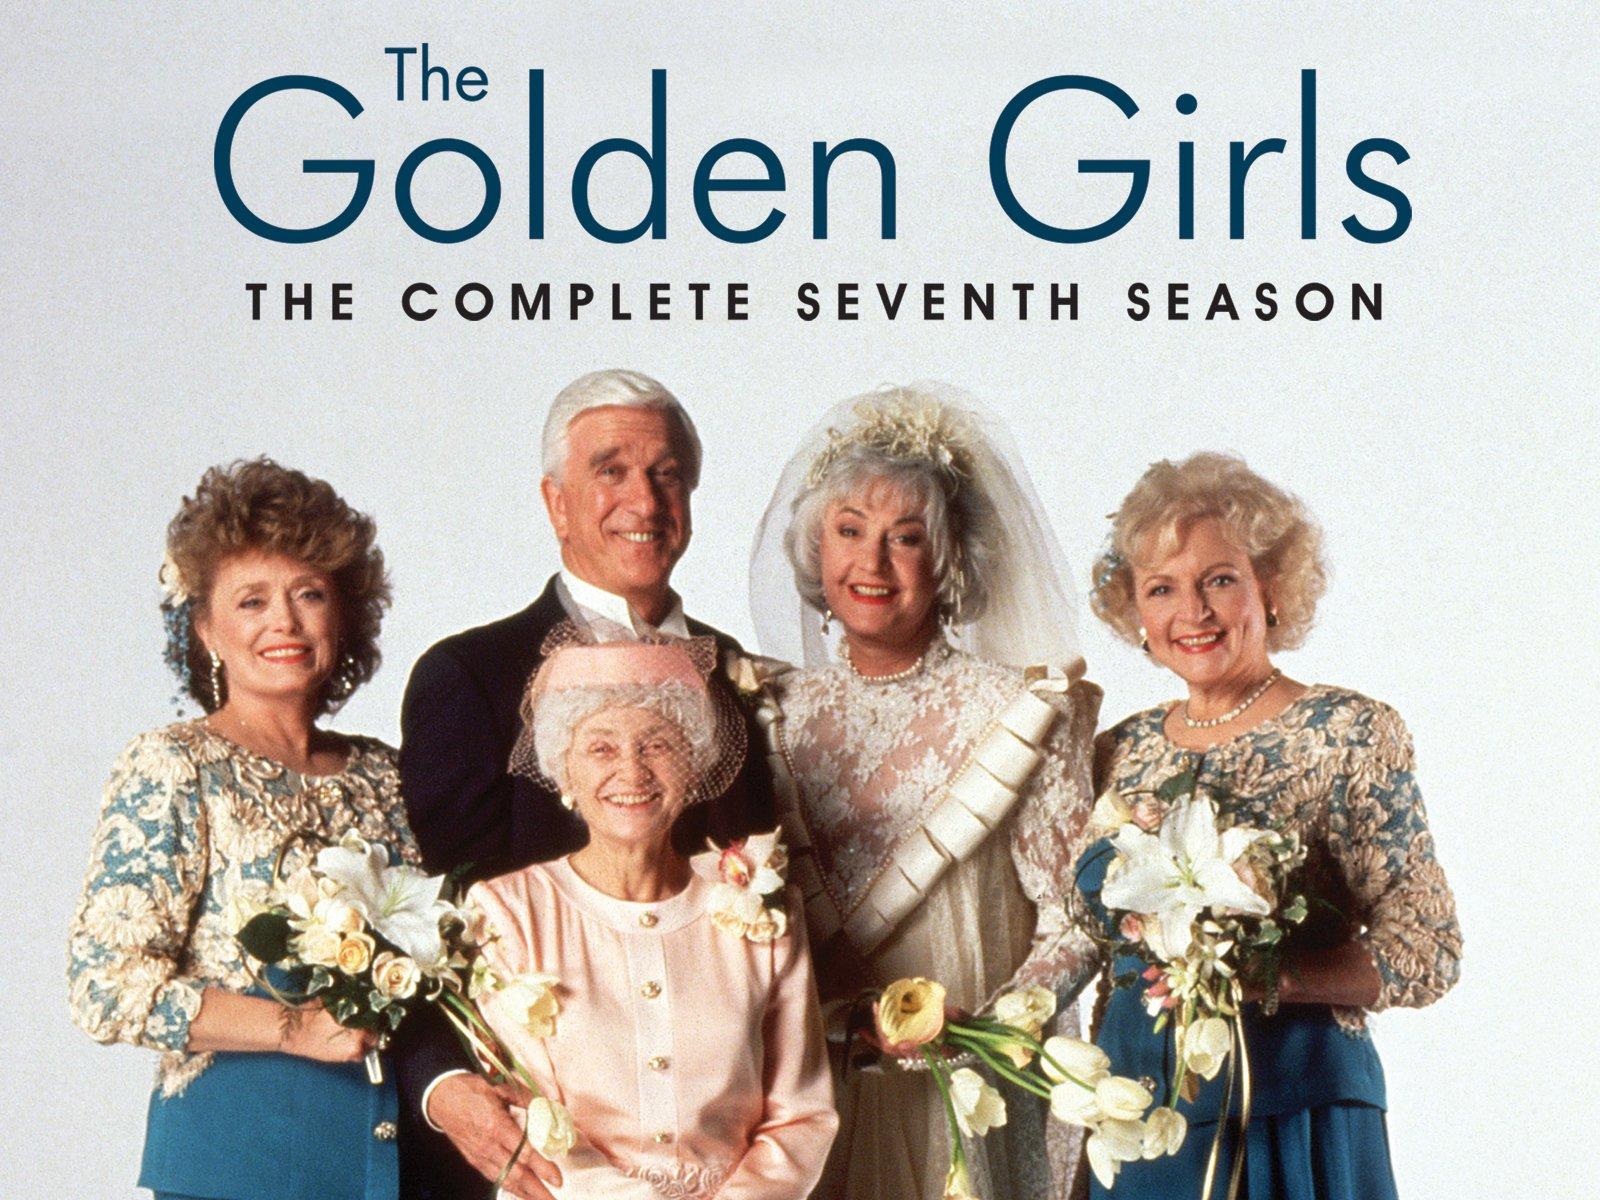 Amazon The Golden Girls Season 7 Digital Services LLC